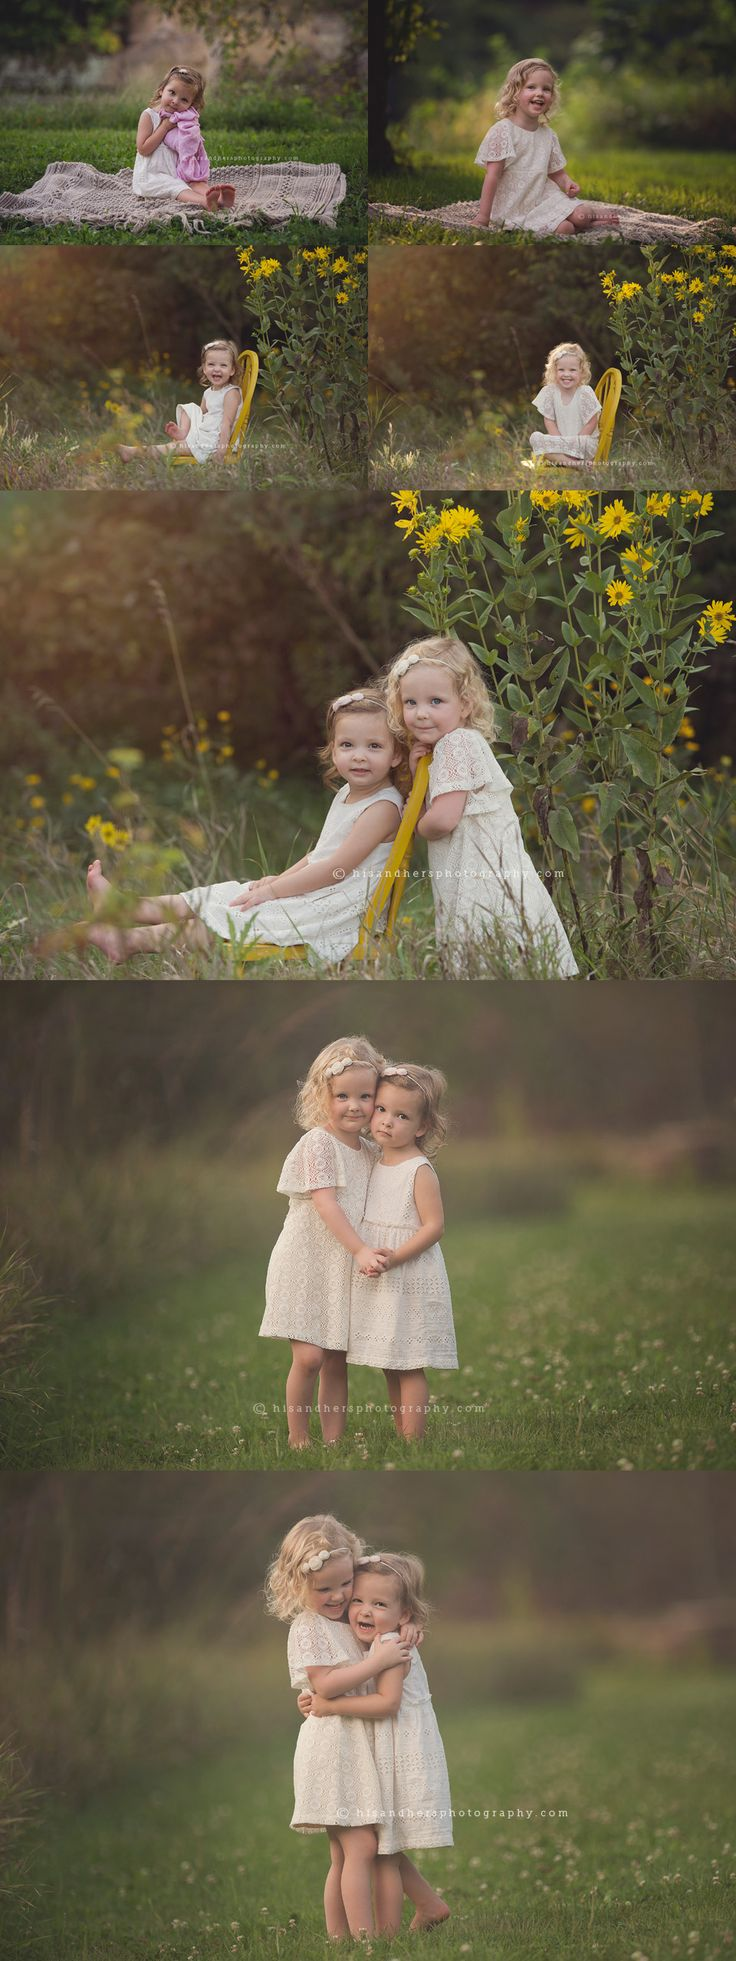 Sisters ages 2 and 3 | Des Moines, Iowa child photographer, Darcy Milder | His & Hers